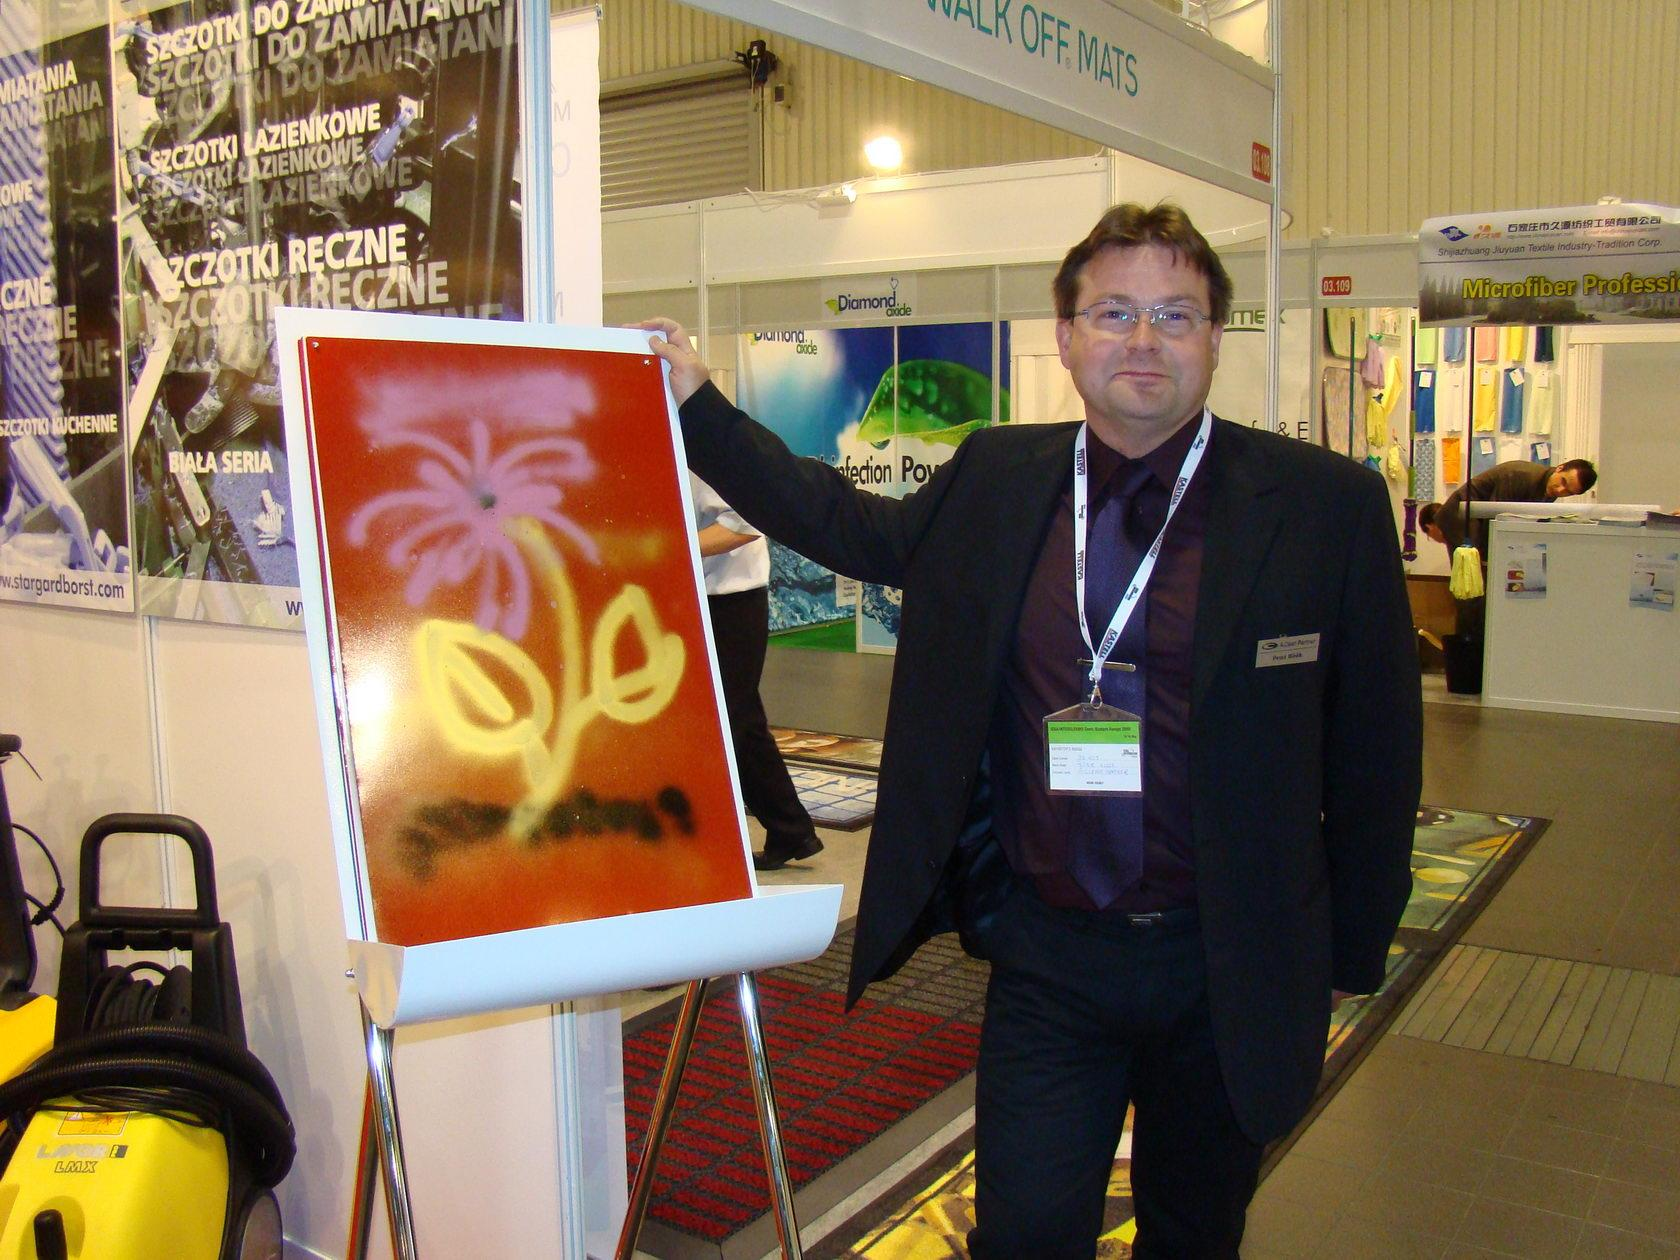 ISSA Interclean 2009 6 1 - Galeria